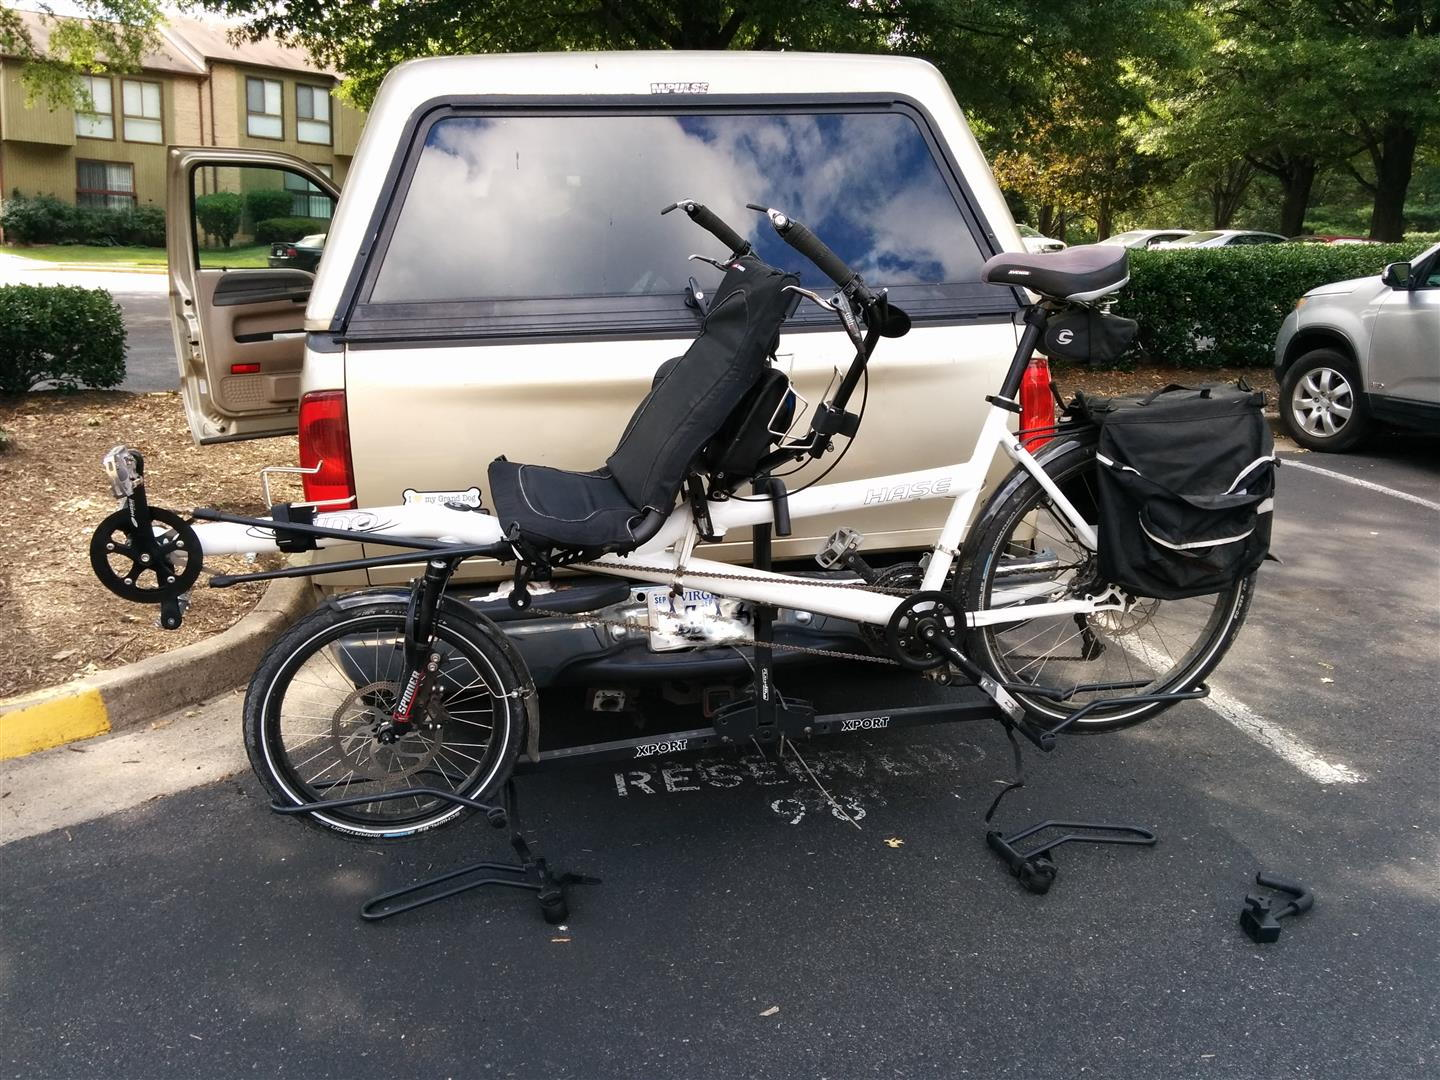 rack bike hitch xport tandem mounted never many performance